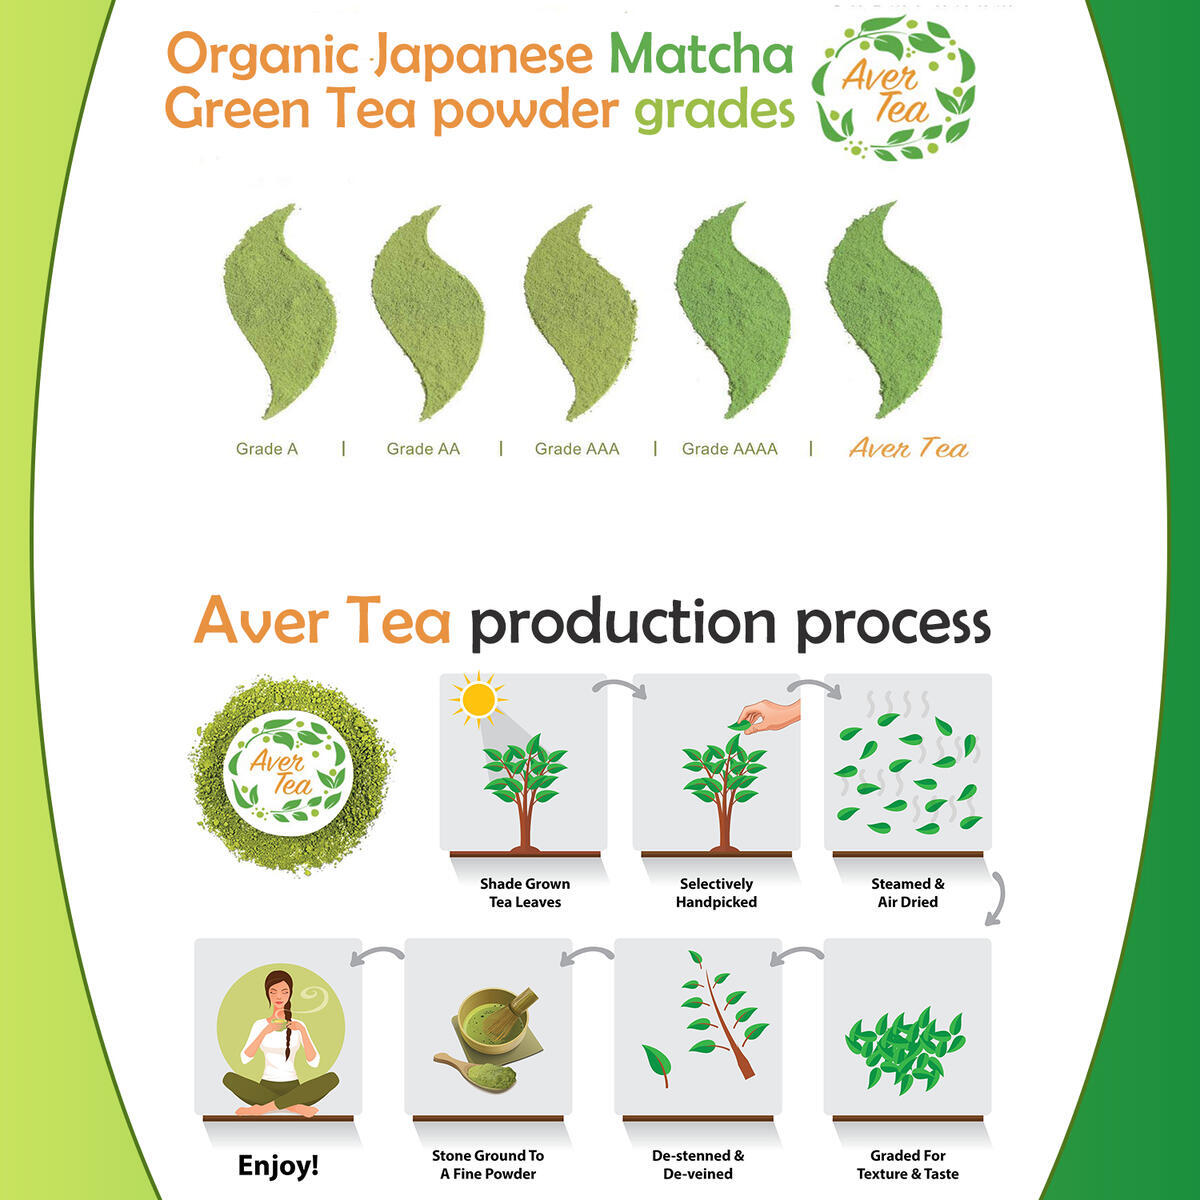 Organic Matcha Green Tea Powder - Classic Japanese Natural Tea Grade - USDA & Vegan Certified Made From 100 Percent Organic Tea Leaves - Antioxidants, Energy, Detox, Smoothies - 3,5 oz by Aver Tea